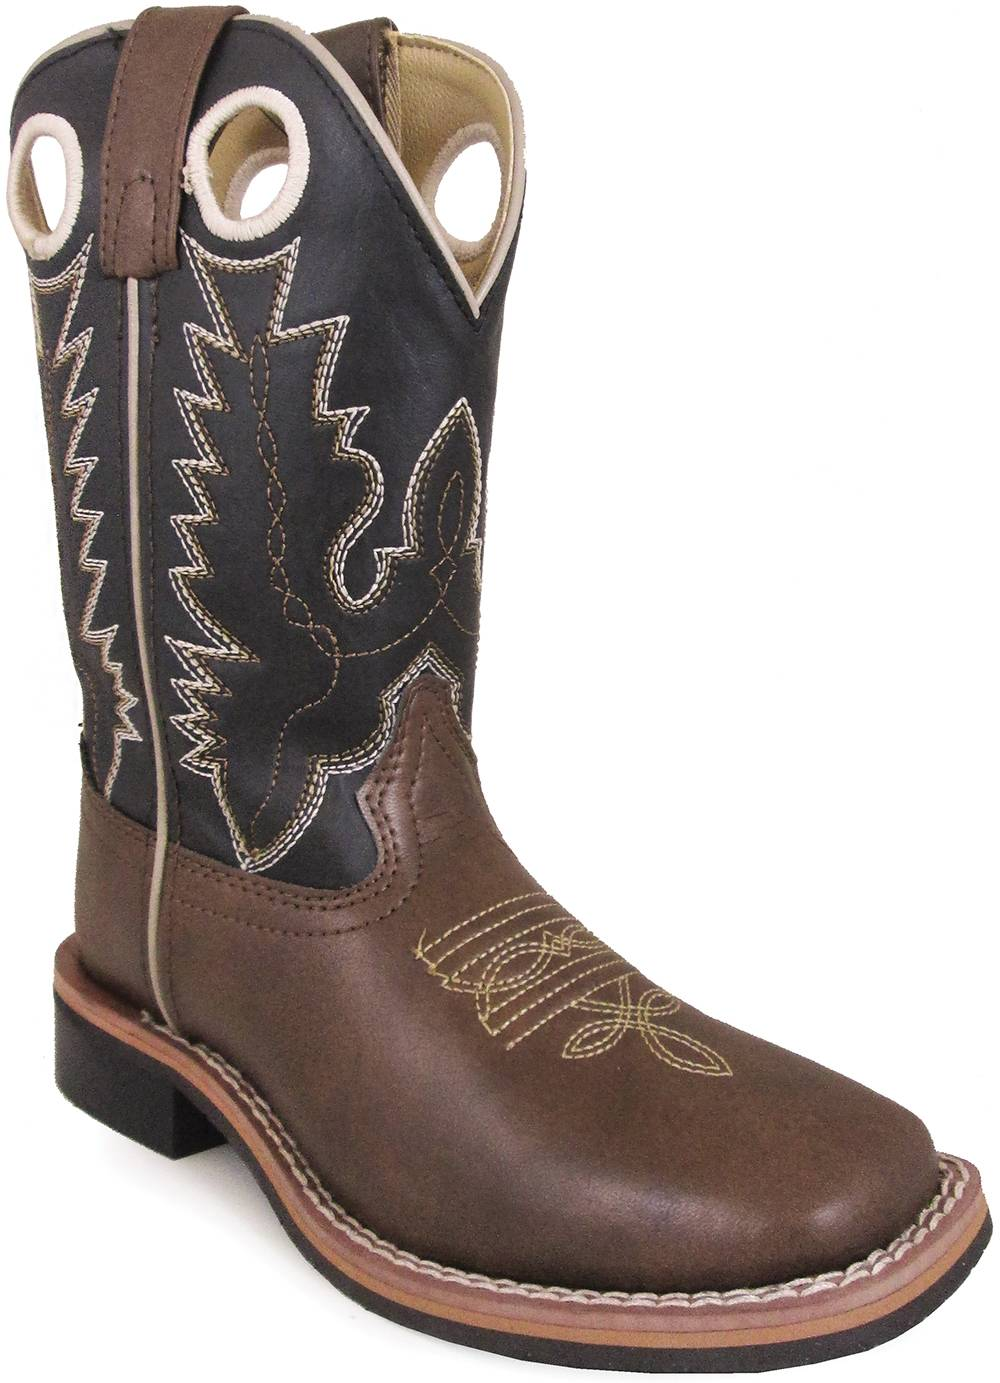 Smoky Mountain Blaze Square Toe Boots - Youth - Brown/Black